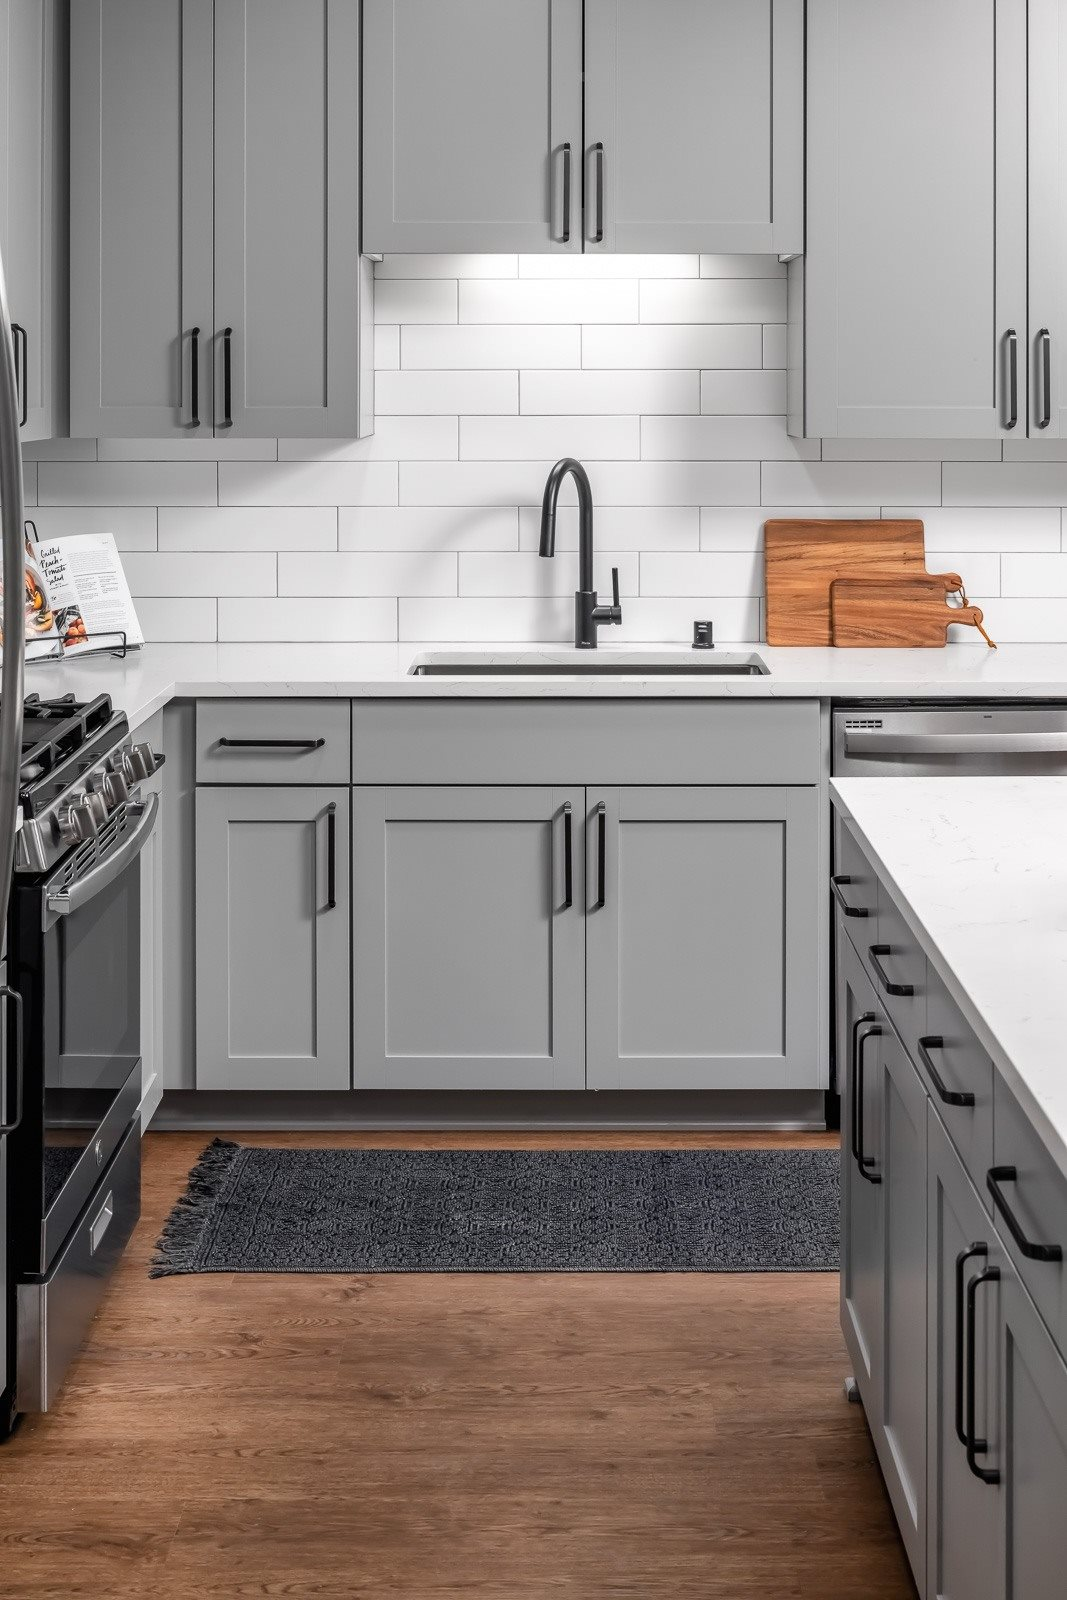 Designer finishes in kitchen with black cabinet pulls and shaker style cabinets